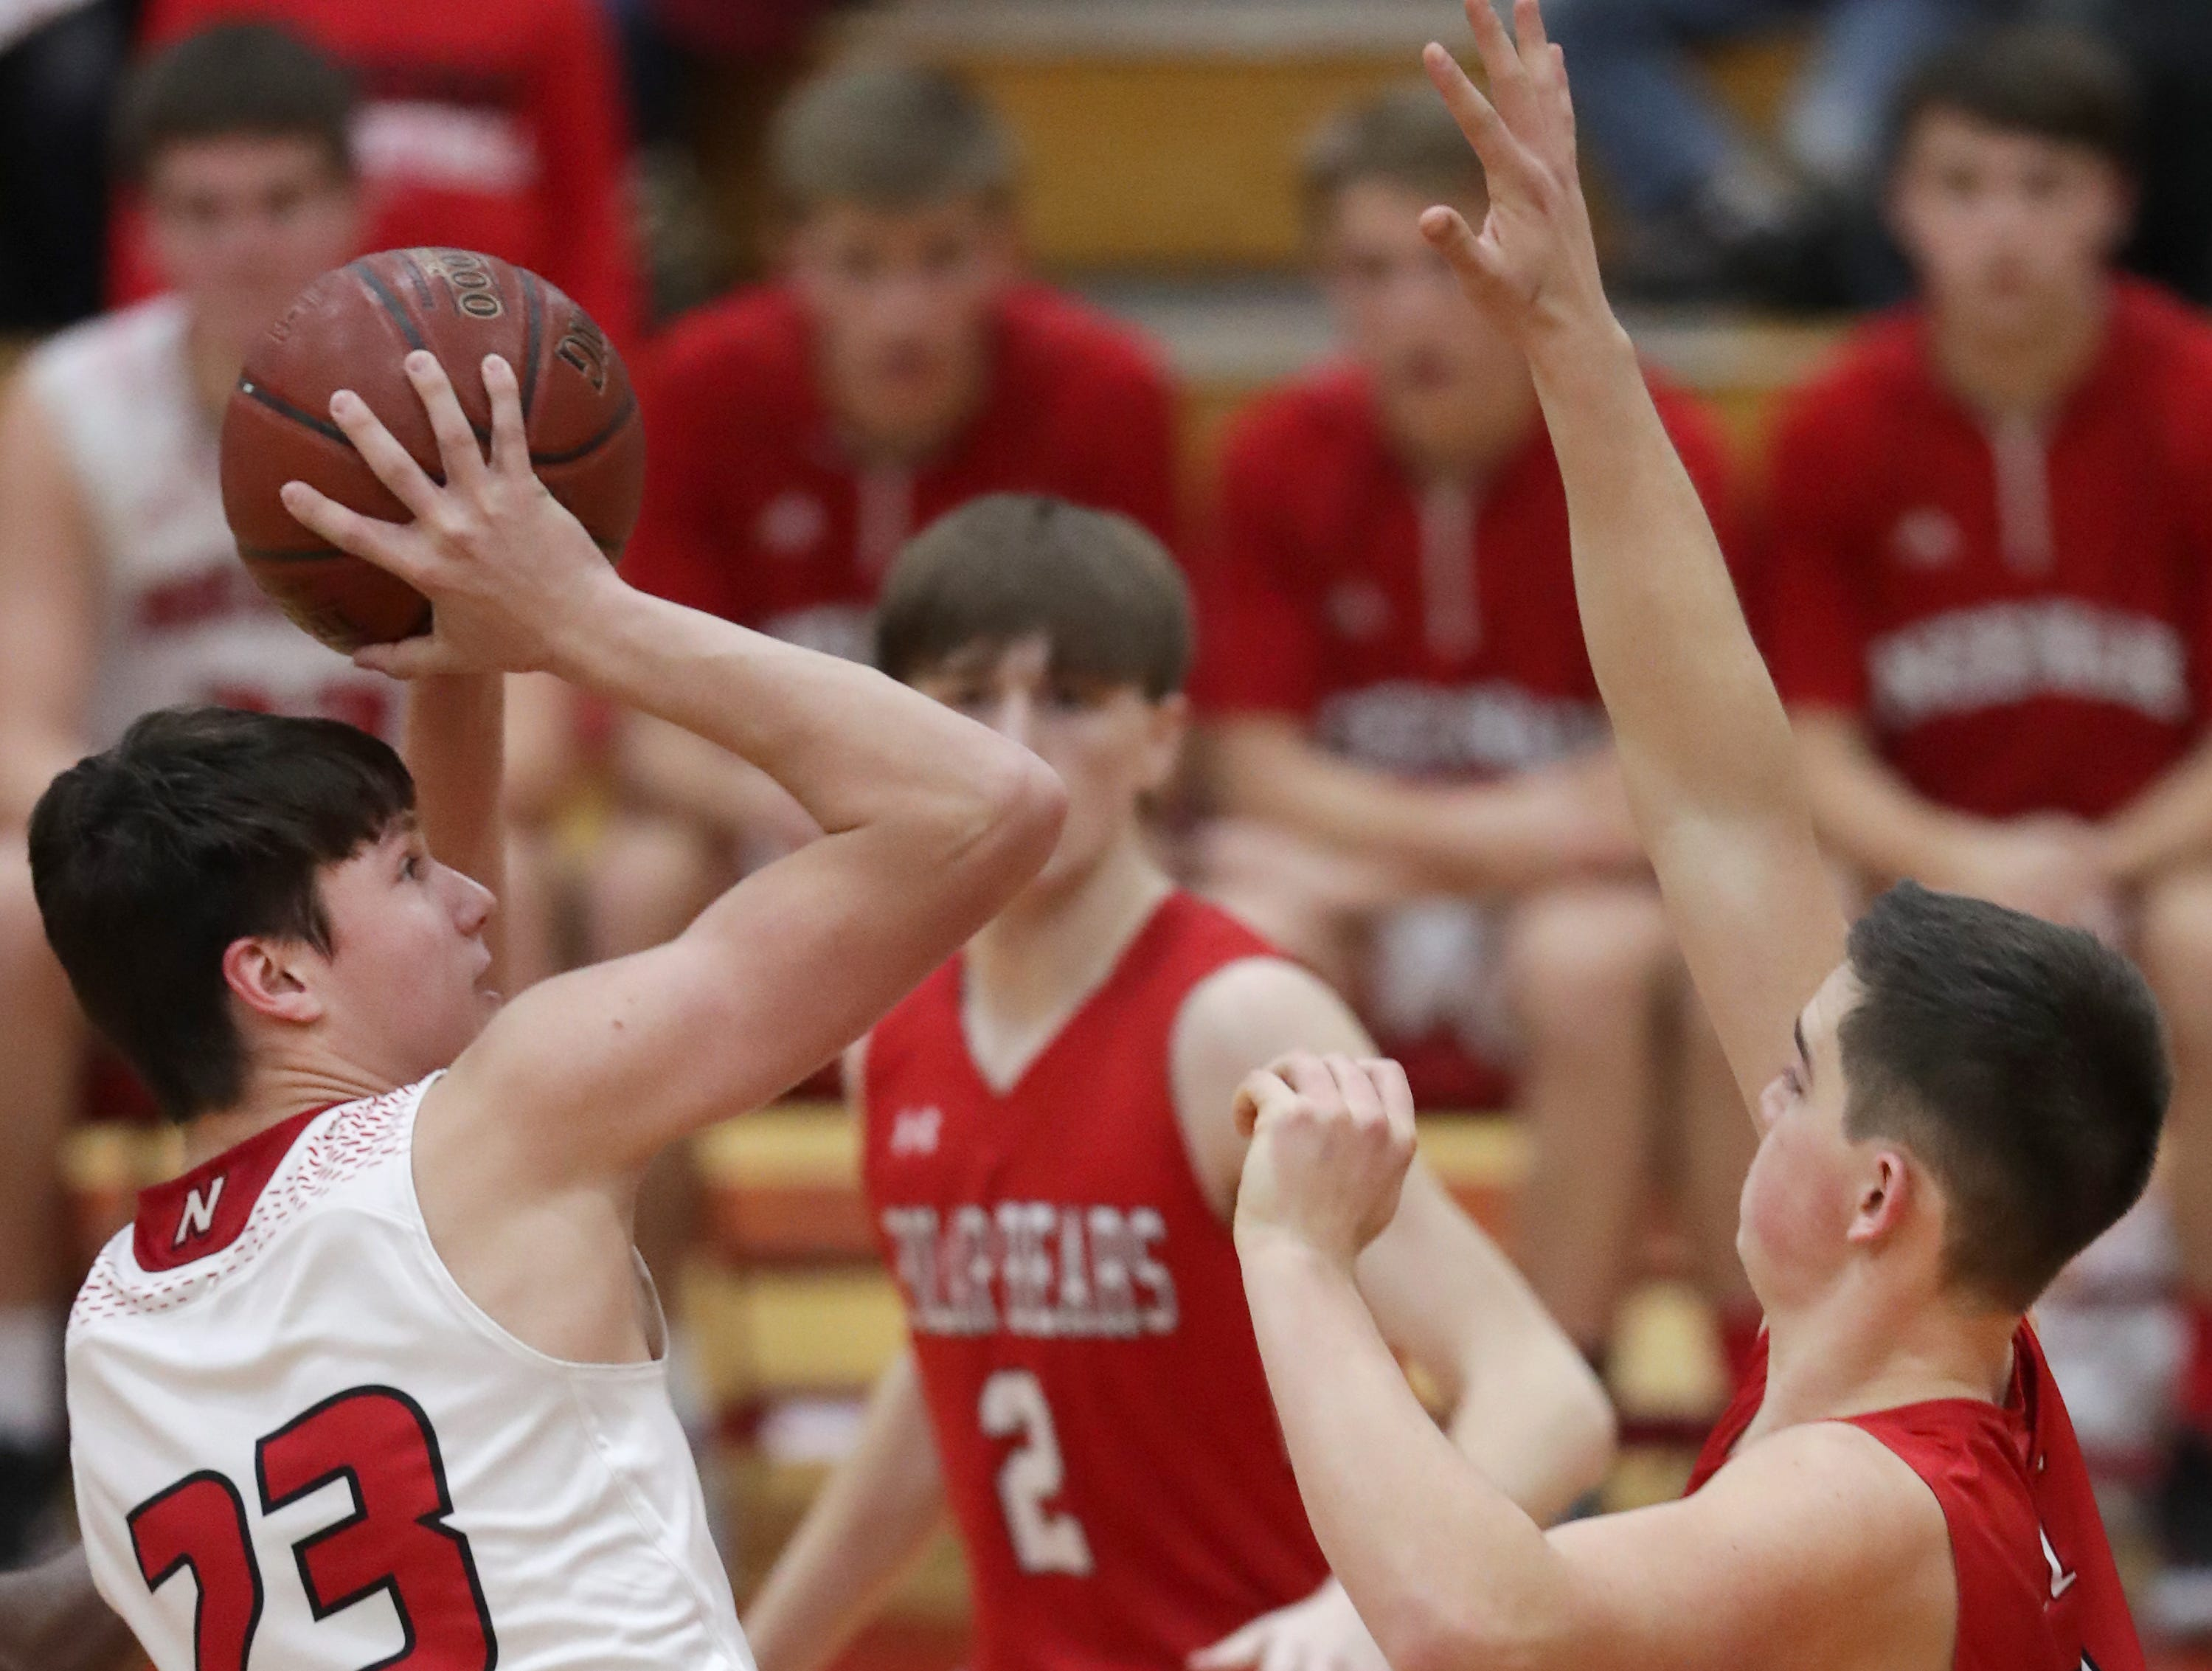 Neenah High School's #23 Ethan Parker against Hortonville High School's #5 Noah Meyer during their Fox Valley Association boys basketball game on Friday, November 30, 2018, in Neenah, Wis. Neenah defeated Hortonville 71 to 67 in overtime.Wm. Glasheen/USA TODAY NETWORK-Wisconsin.